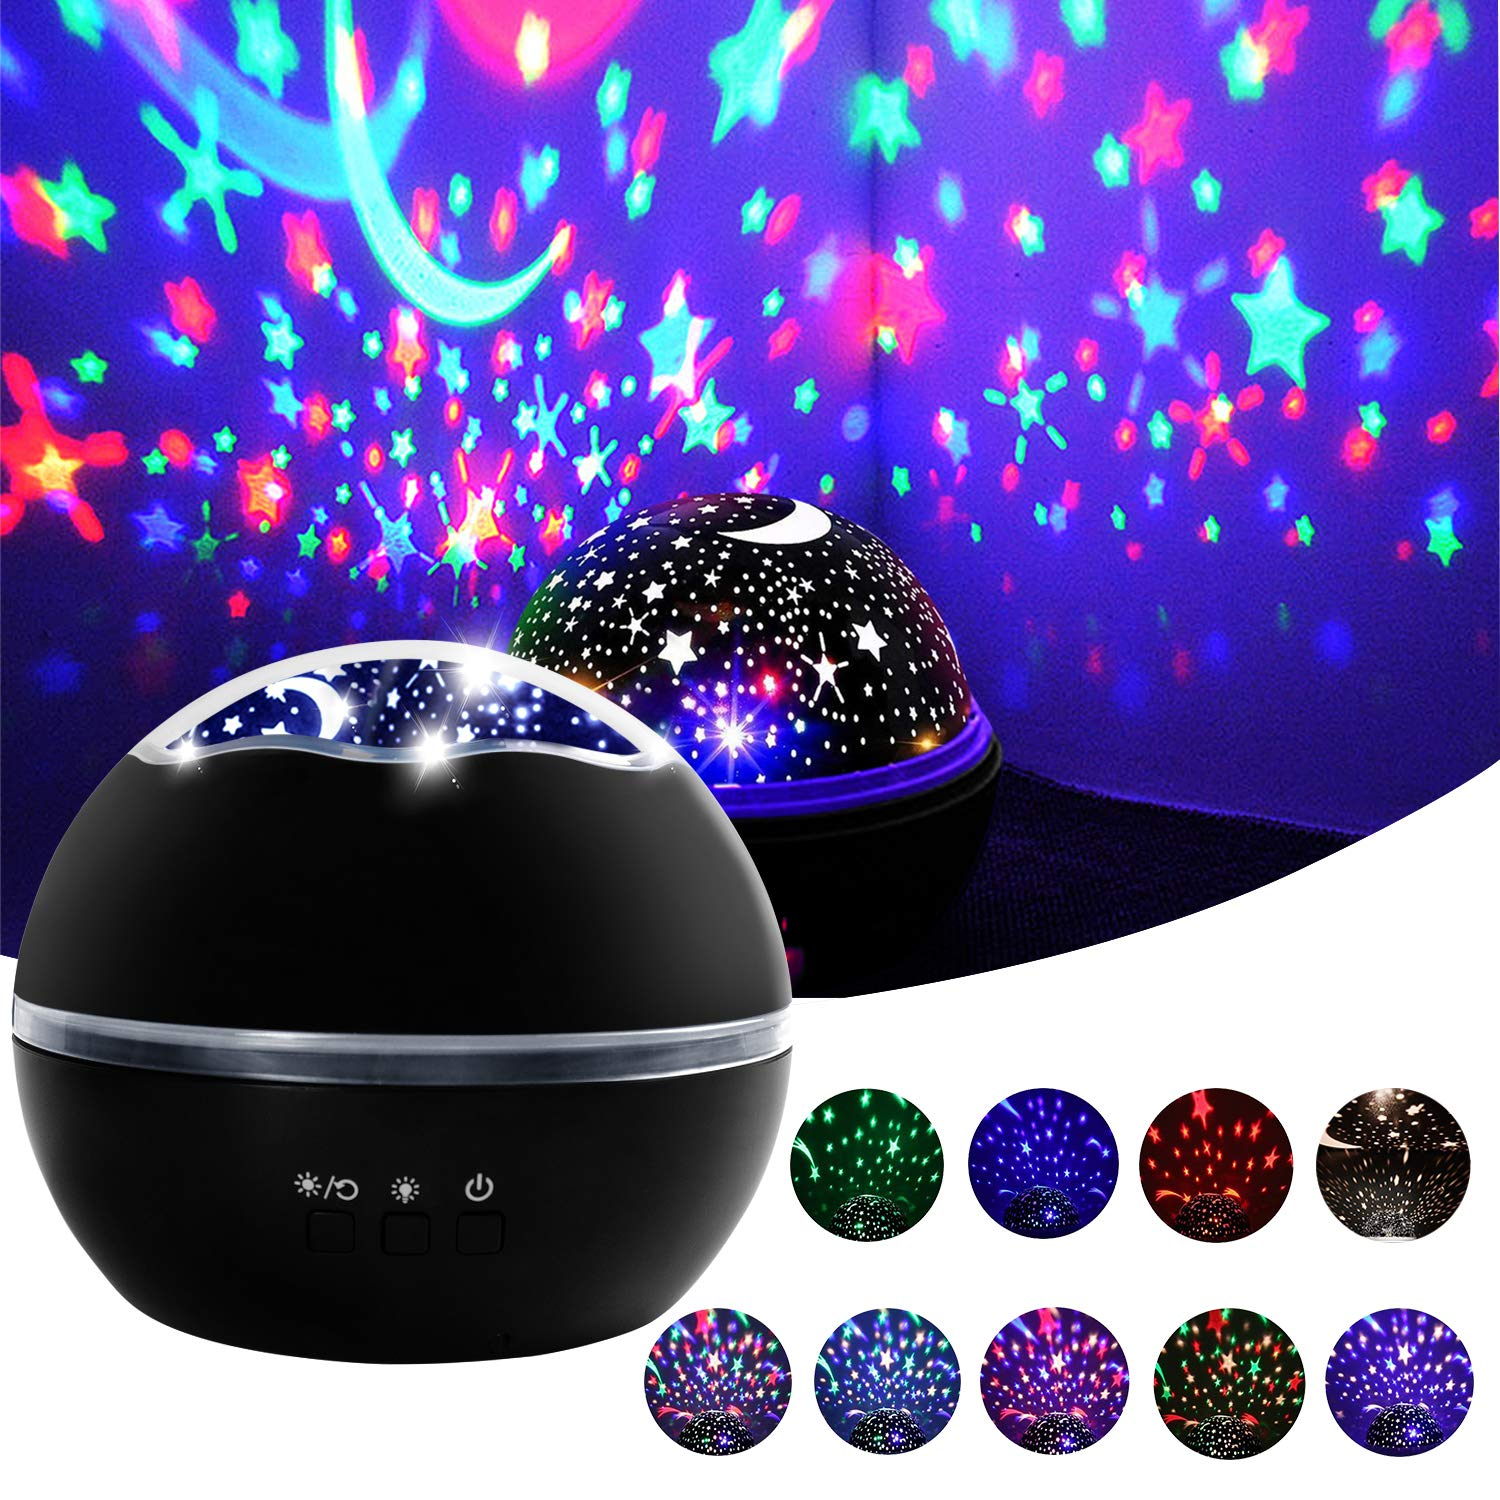 Star projector night light baby projector nuresy lamp 360 degree rotating star moon cover projector night light for kids bedroom birthdaybaby nursery